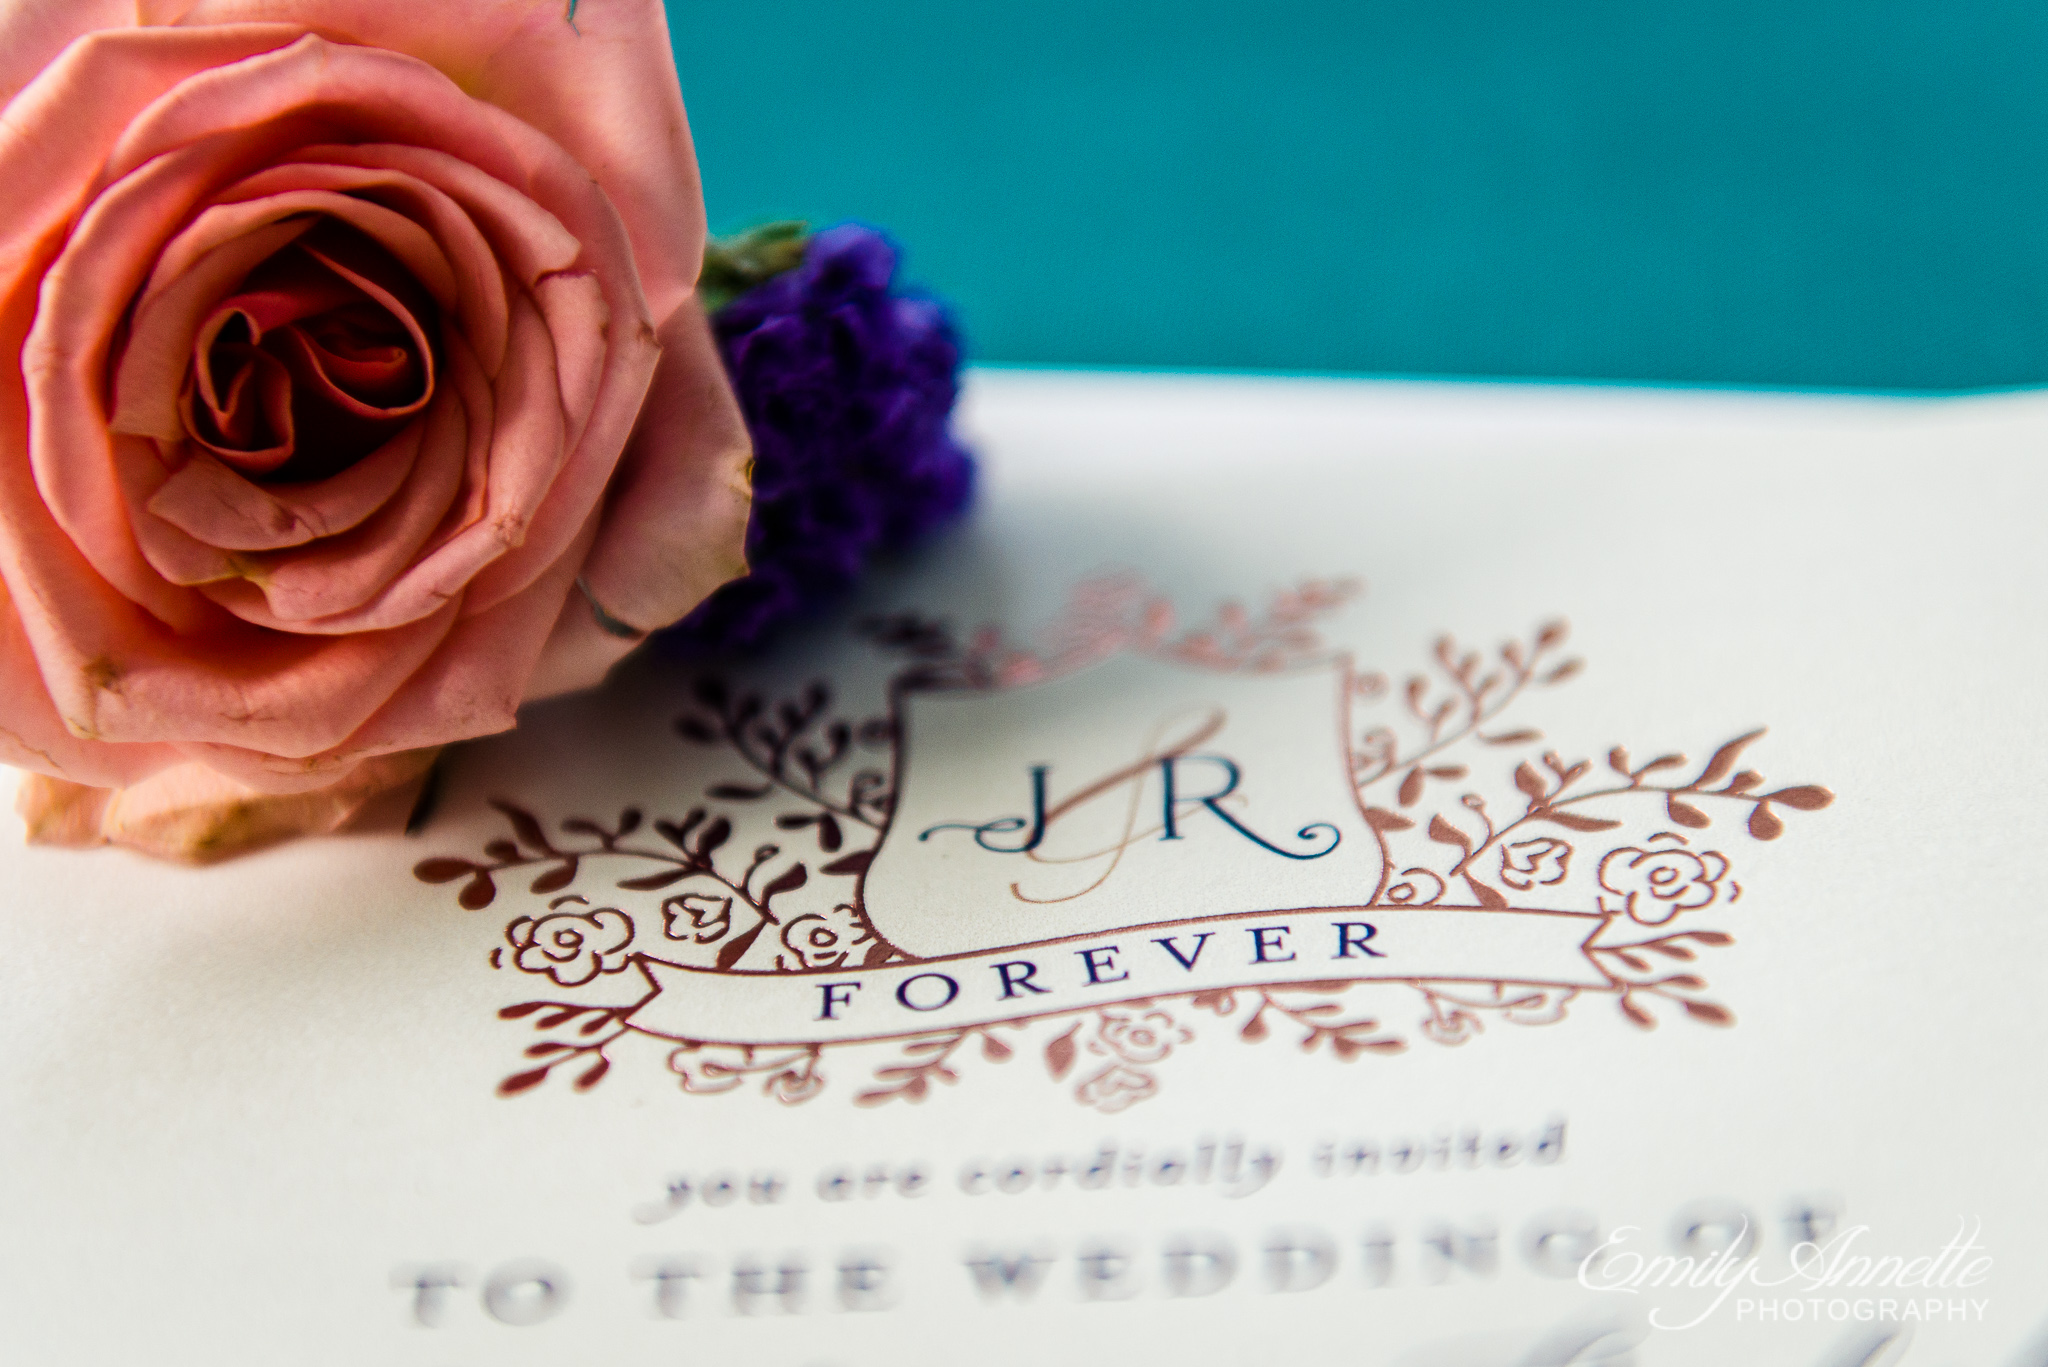 A pink rose sitting on a rose gold wedding invitation monogram for a wedding at Amber Grove near Richmond, Virginia